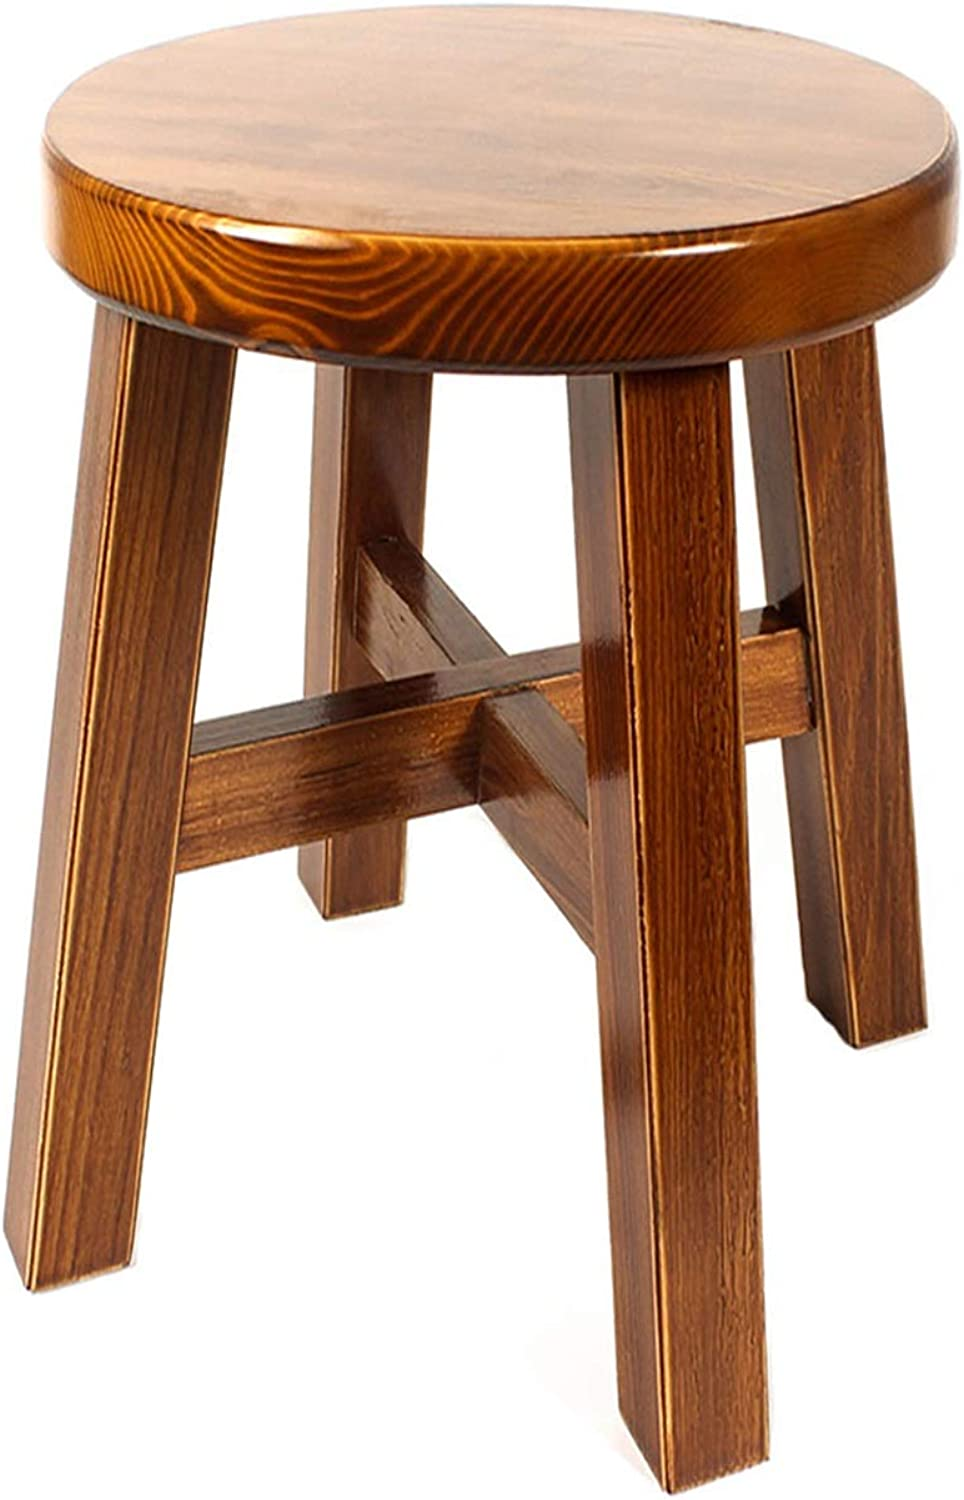 Stool Wood Stool Living Room Home Creative Adult Small Bench Fashion Simple Modern 01